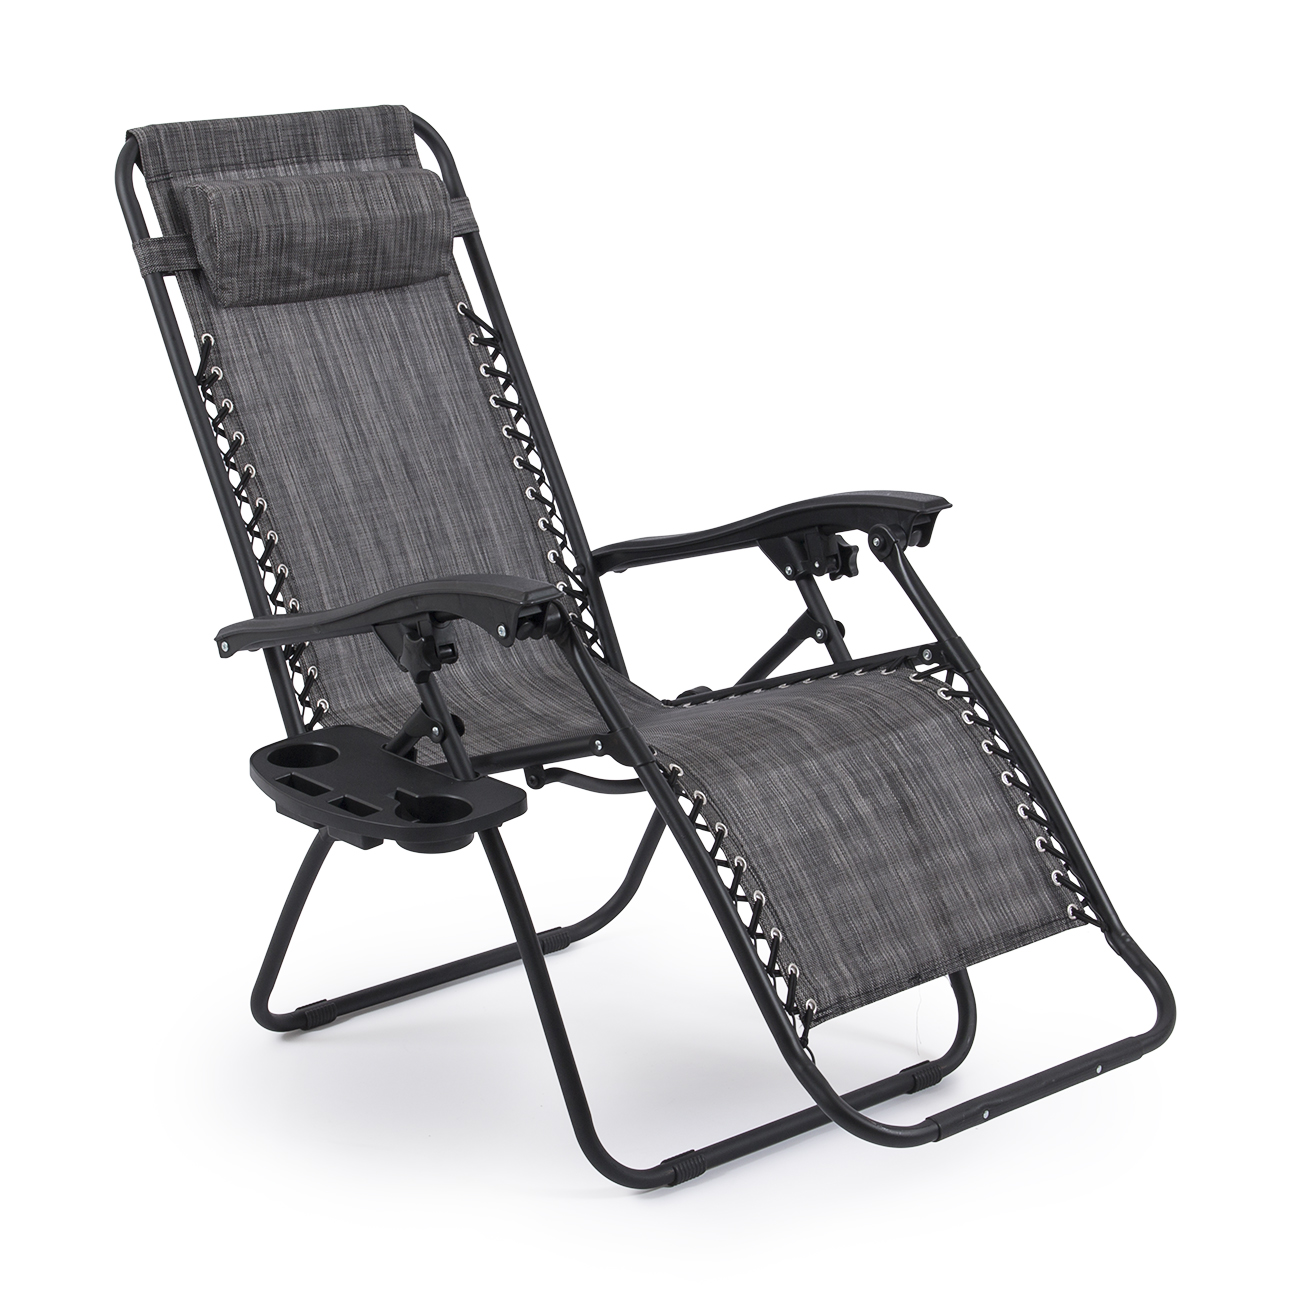 patio recliner lounge chair used covers for sale 2 outdoor zero gravity beach pool yard